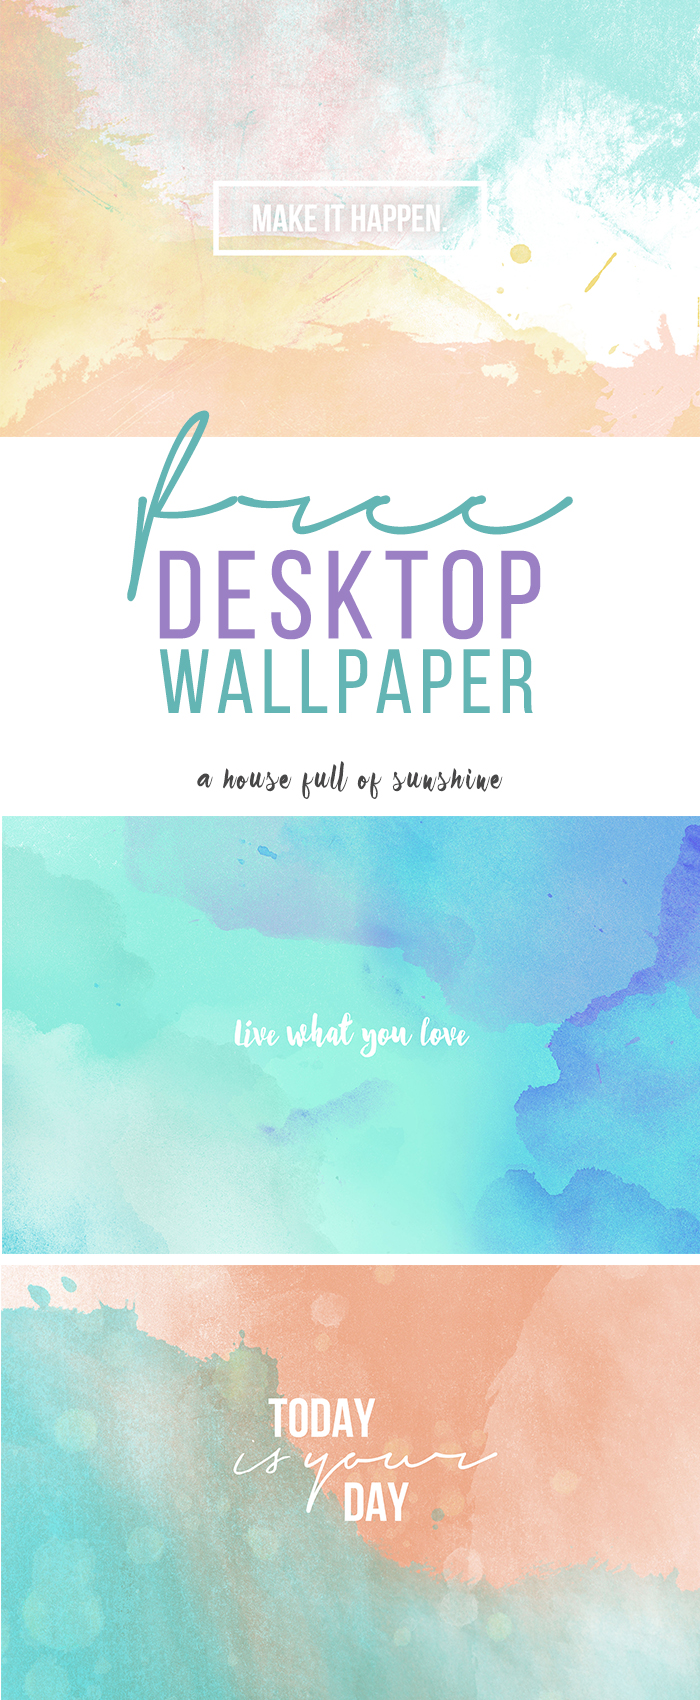 FREE-desktop-wallpaper-three-gorgeous-watercolour-designs-available-for-instant-download-Give-you-wallpaper-wp4806544-1